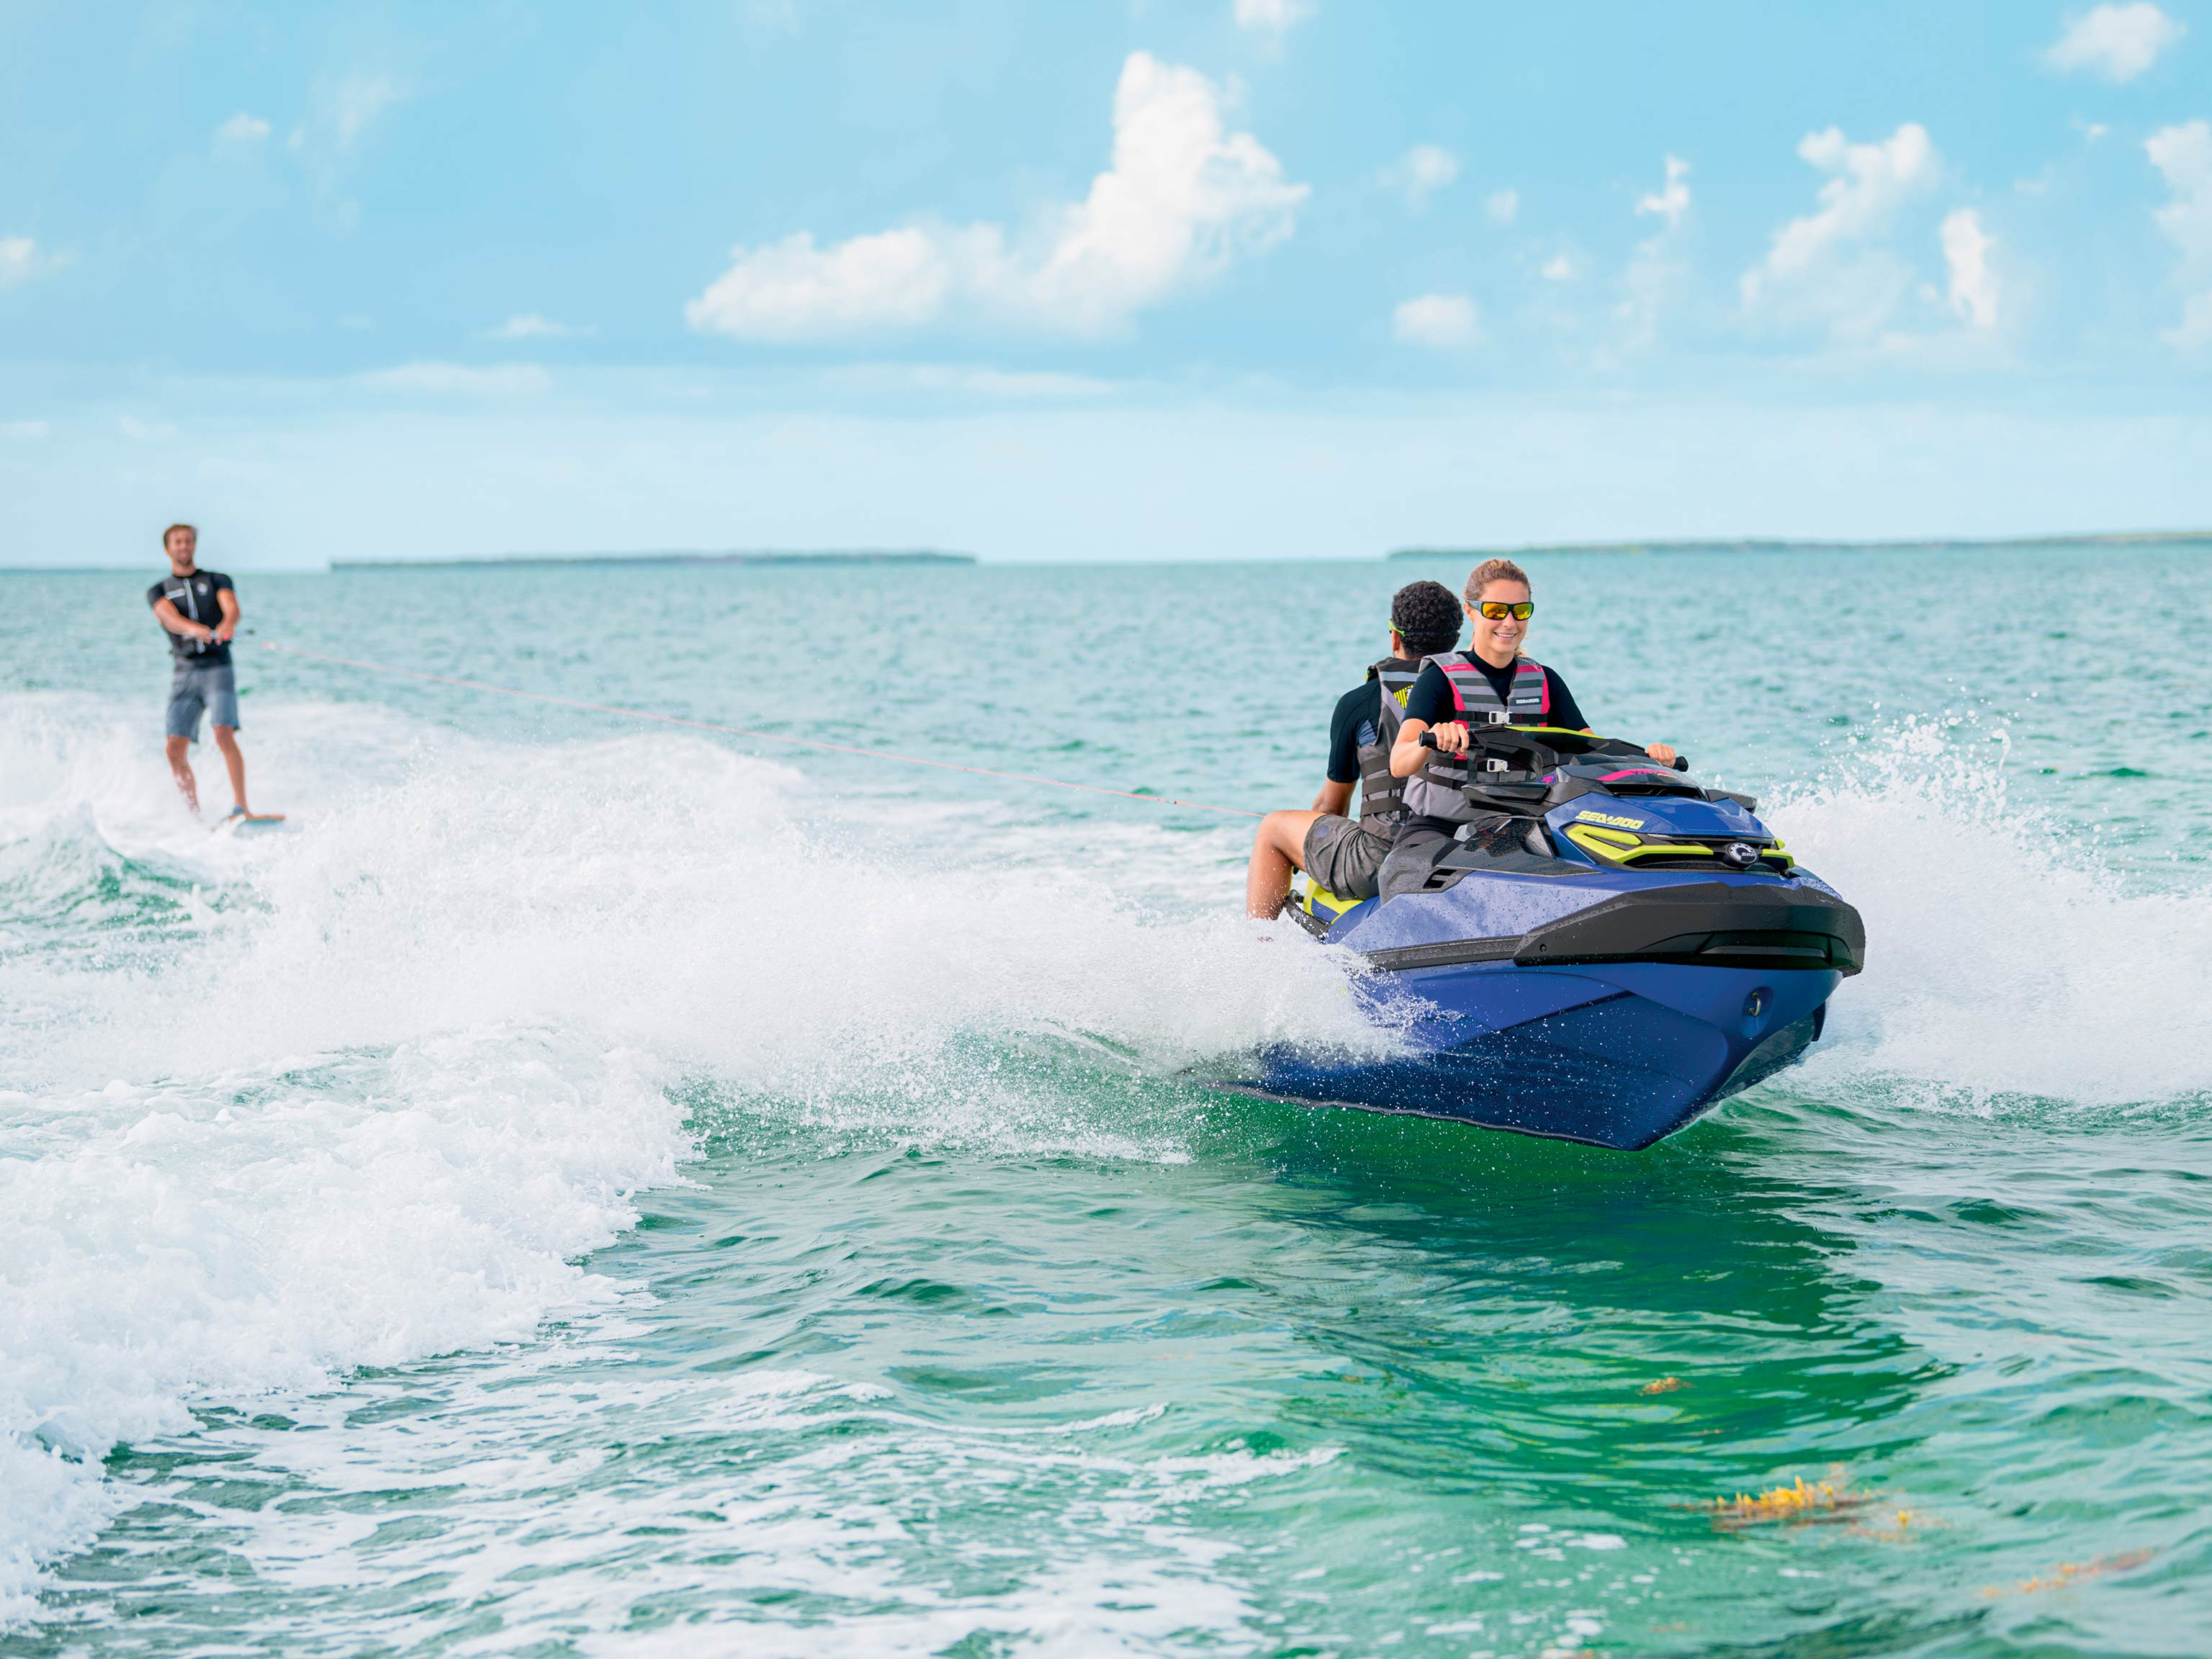 Group of three riding a Sea-Doo Wake Pro 230